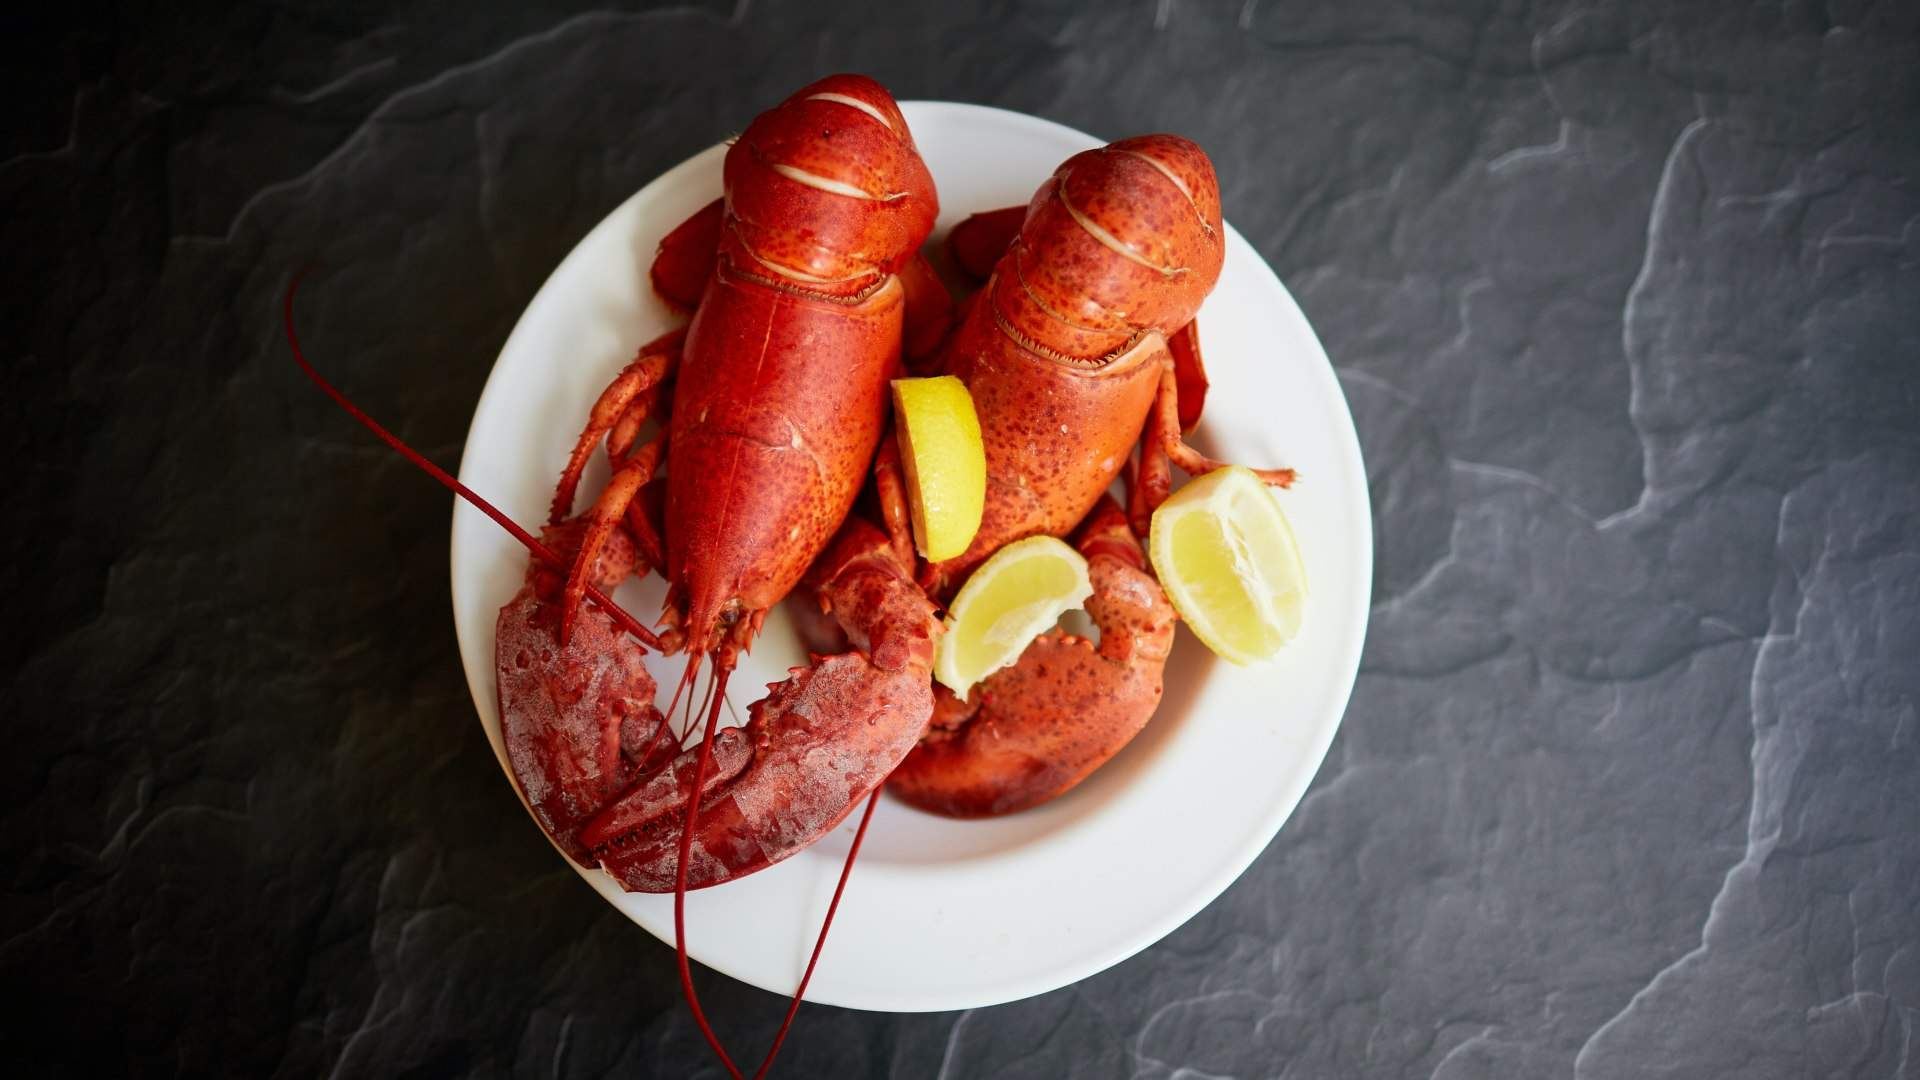 Woolworths and Coles Are Selling $20 Lobsters Nationwide in the Lead Up to Christmas